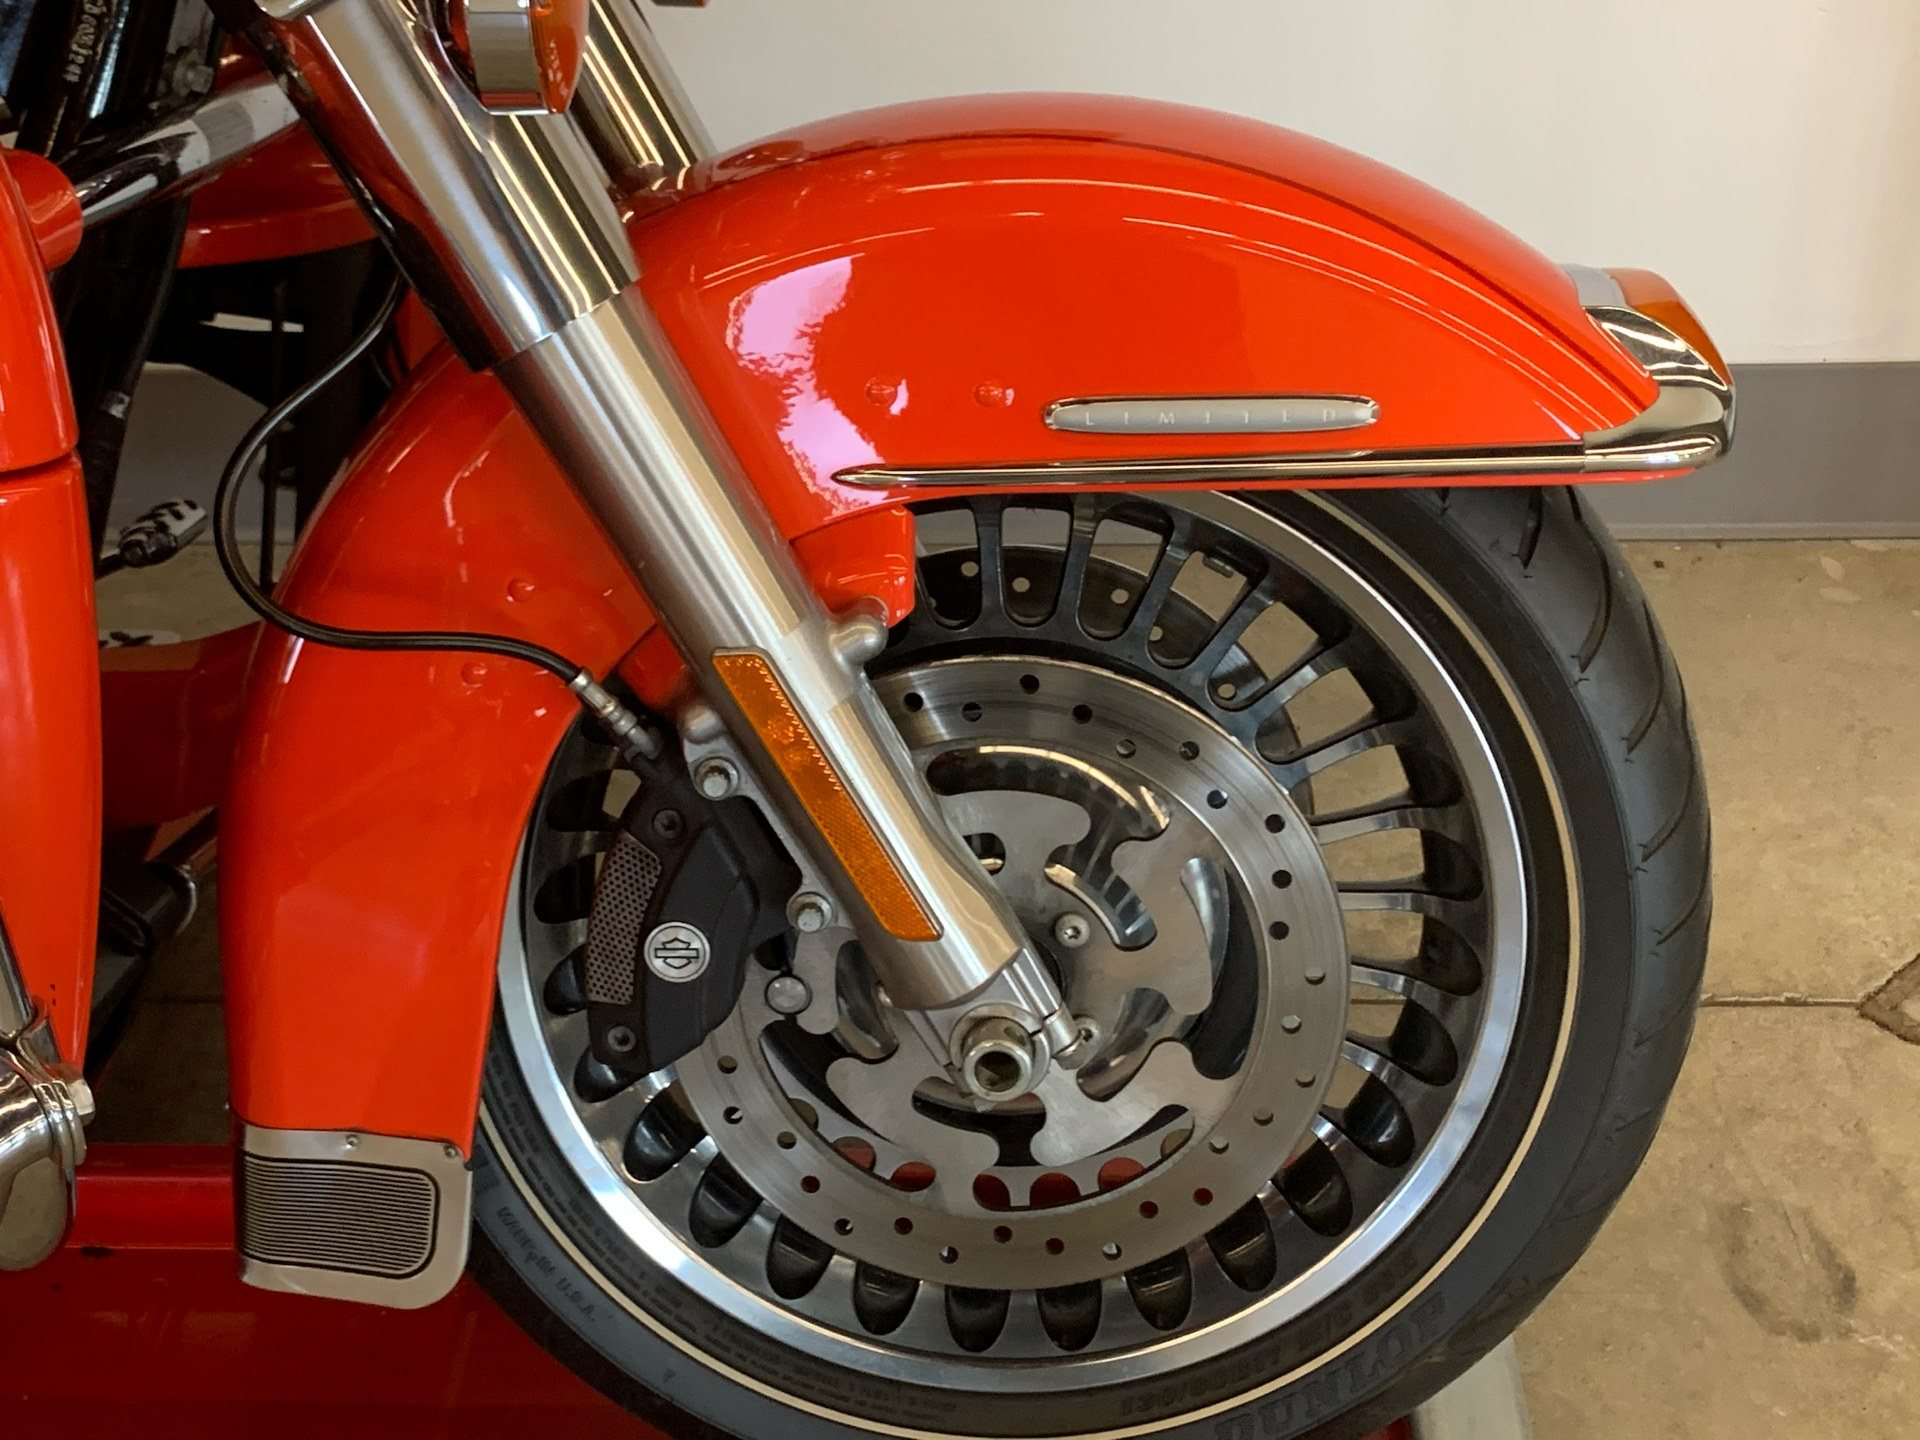 2012 Harley-Davidson Electra Glide® Ultra Limited in Flint, Michigan - Photo 10